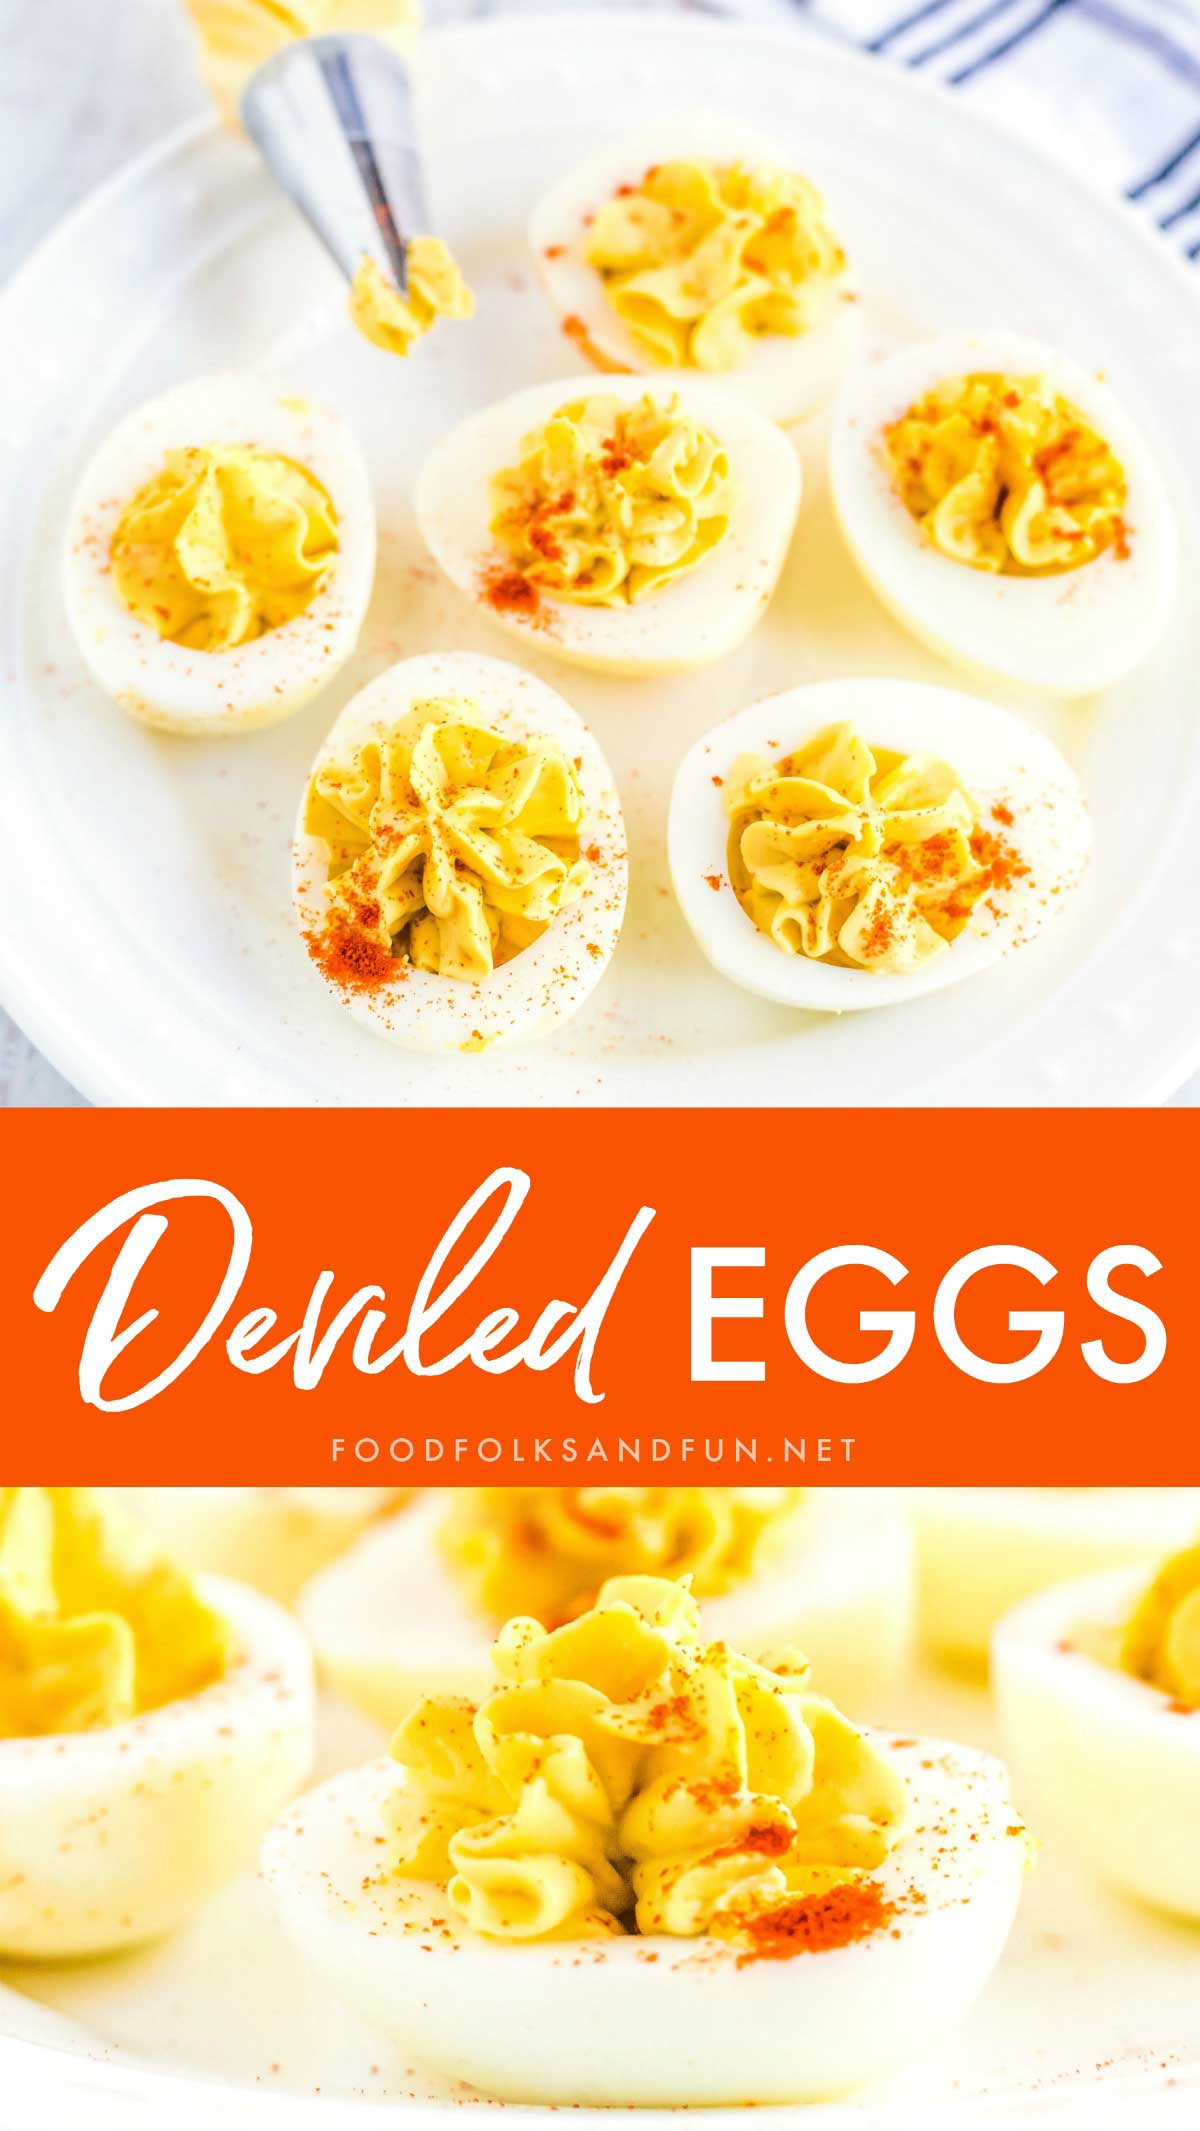 This classic Deviled Eggs recipe is always a crowd favorite at every party and barbecue. They're the perfect mouth-full of comfort food. #Appetizer #EasyAppetizer #EasterAppetizer #EasterRecipe #SpringRecipe #food #recipe #FingerFood #foodfolksandfun via @foodfolksandfun